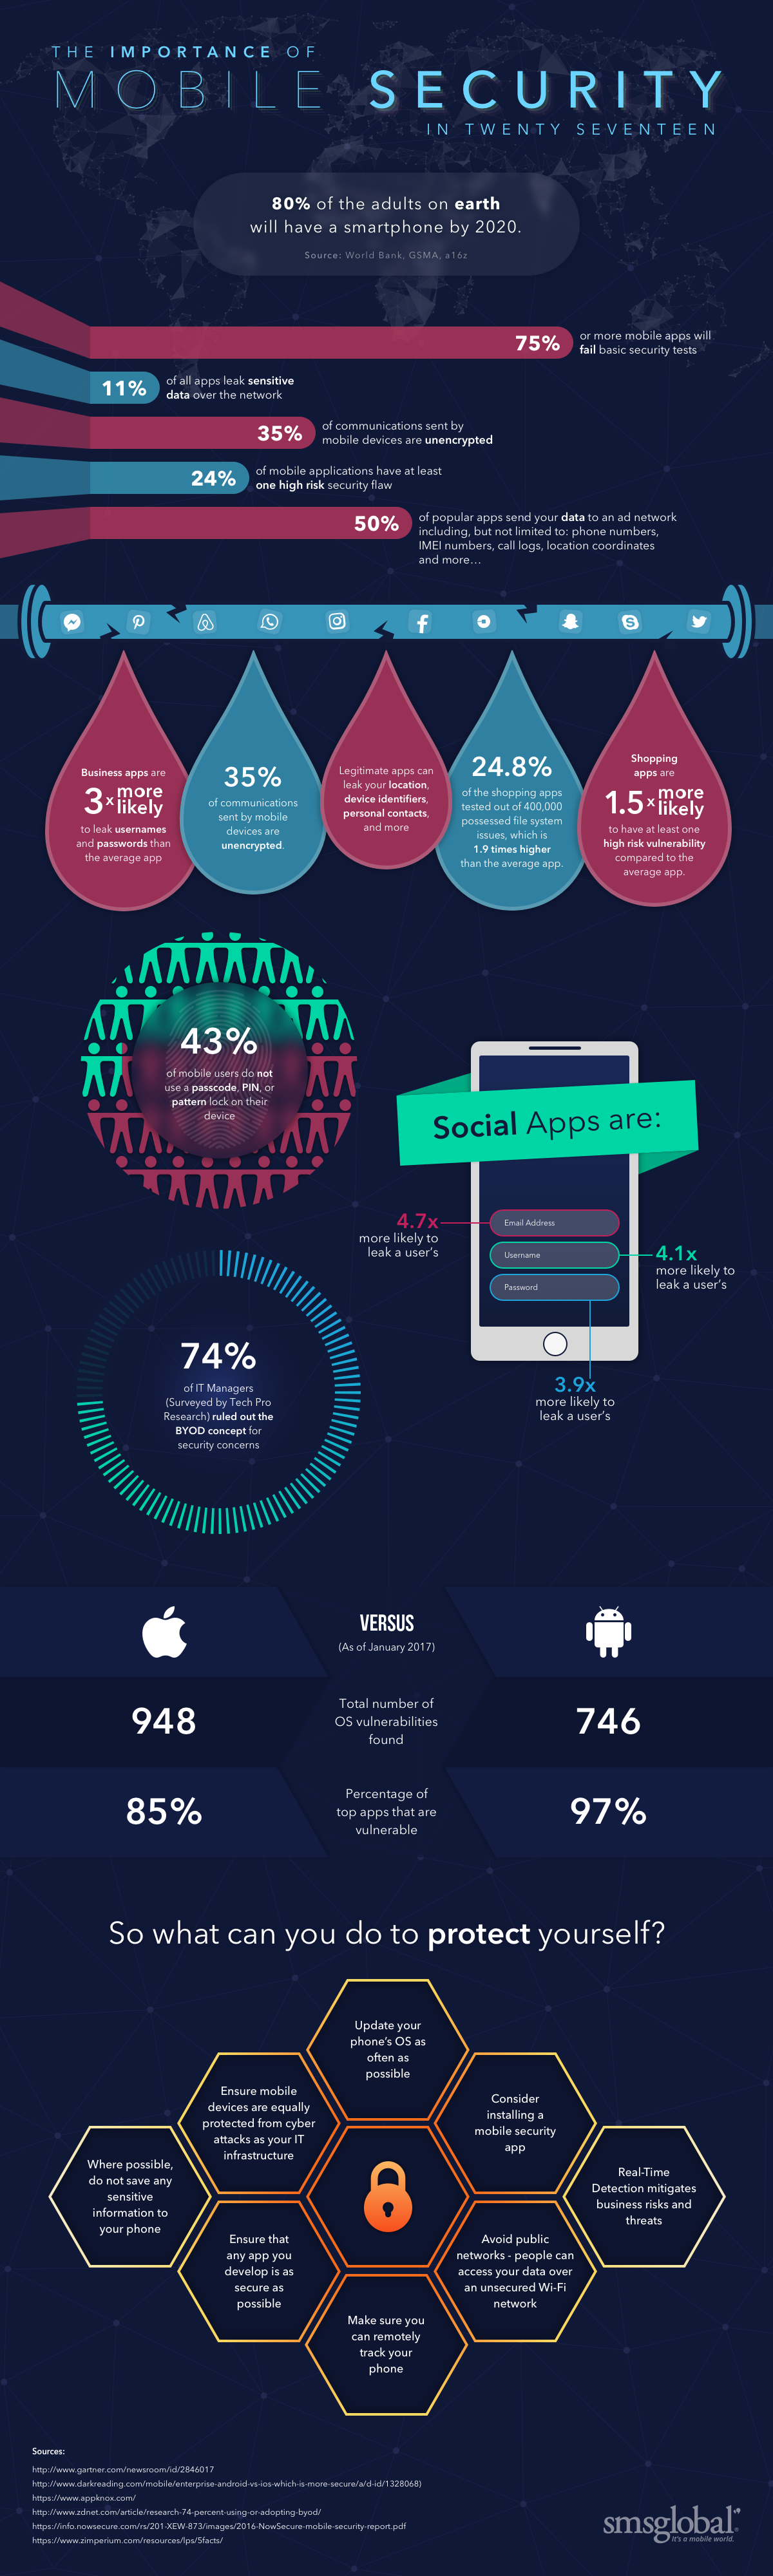 mobilesecurityinfographic1